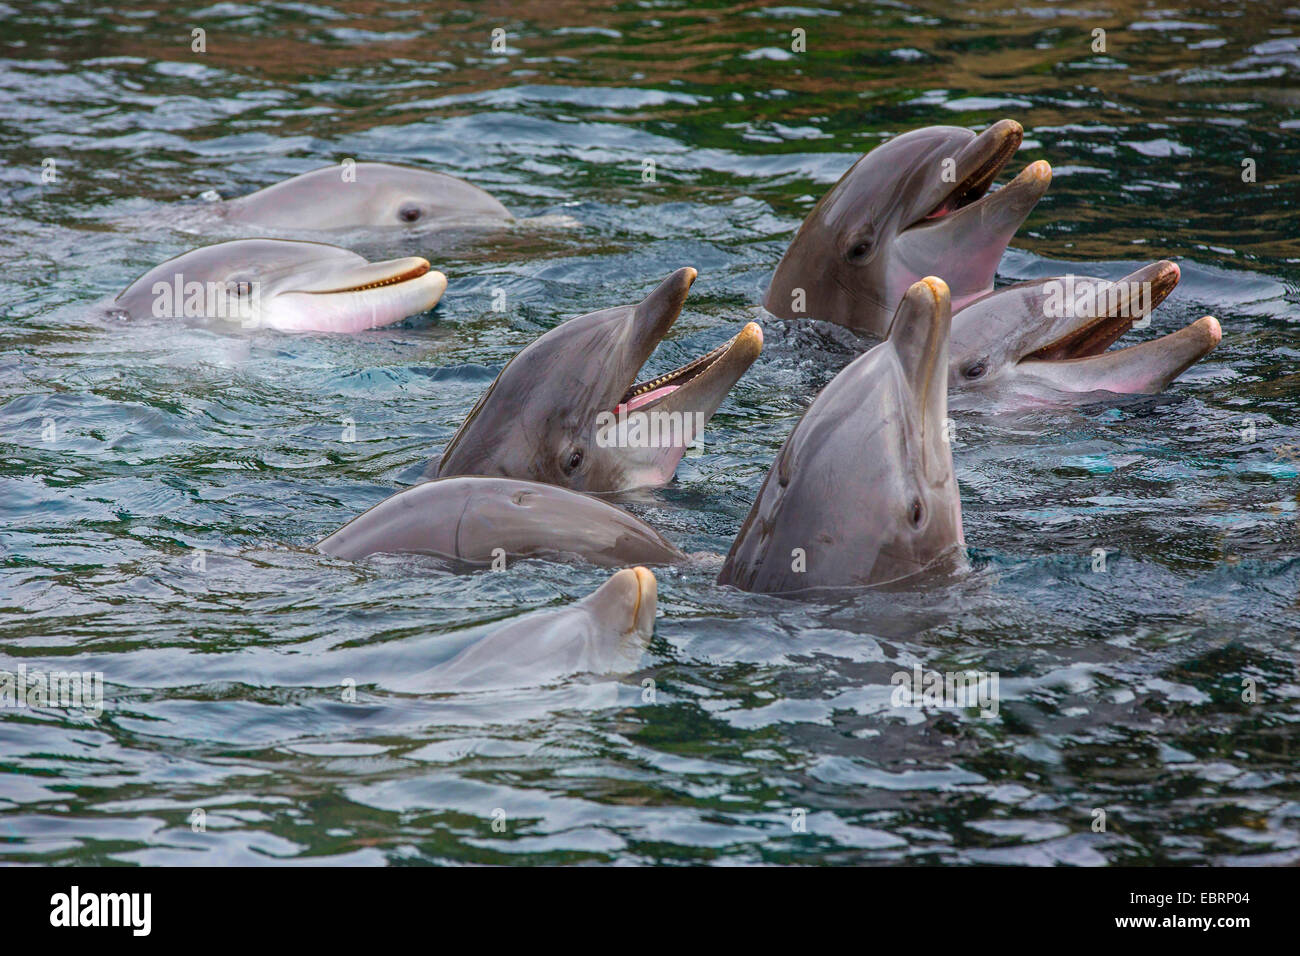 Bottlenosed dolphin, Common bottle-nosed dolphin (Tursiops truncatus), eight dolphins looking out of the water - Stock Image